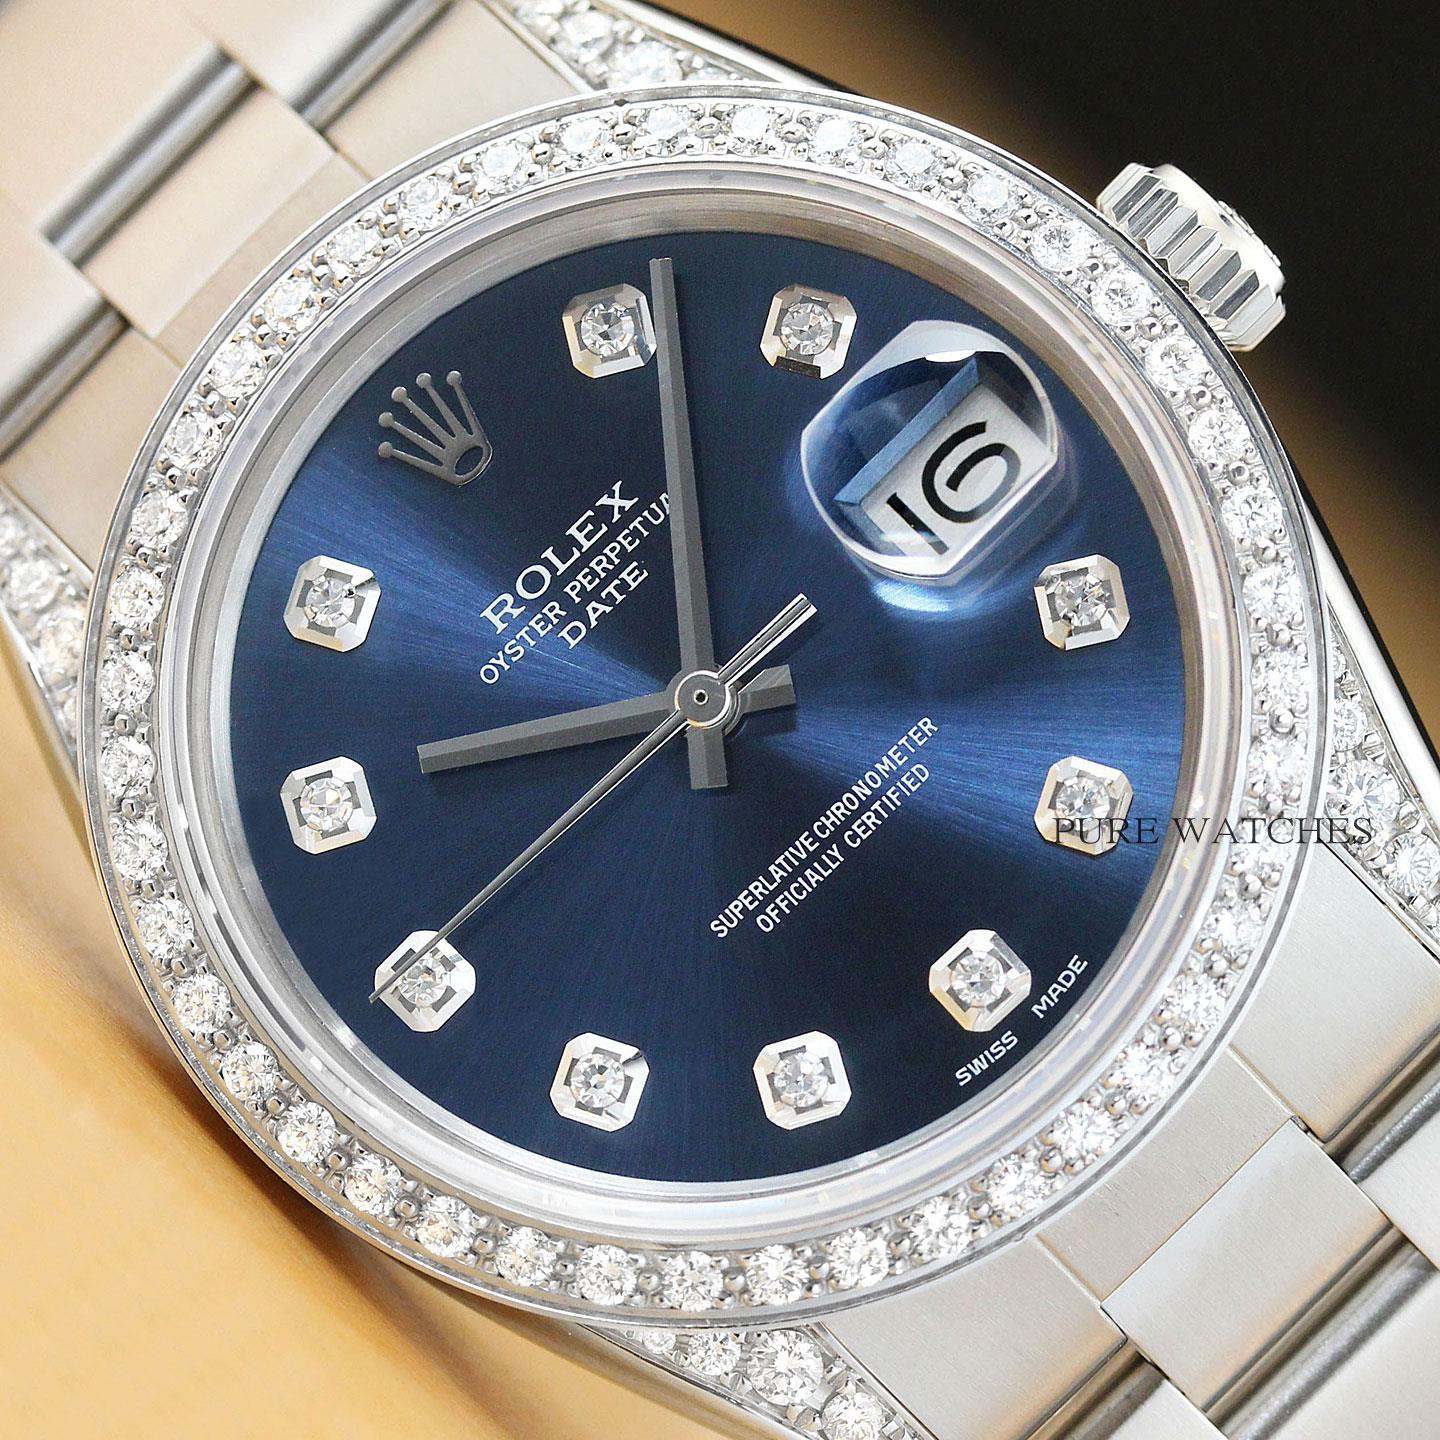 a25028c2fd64 Details about ROLEX UNISEX OYSTER PERPETUAL DATE 18K WHITE GOLD DIAMOND  BEZEL+ LUGS 34MM WATCH